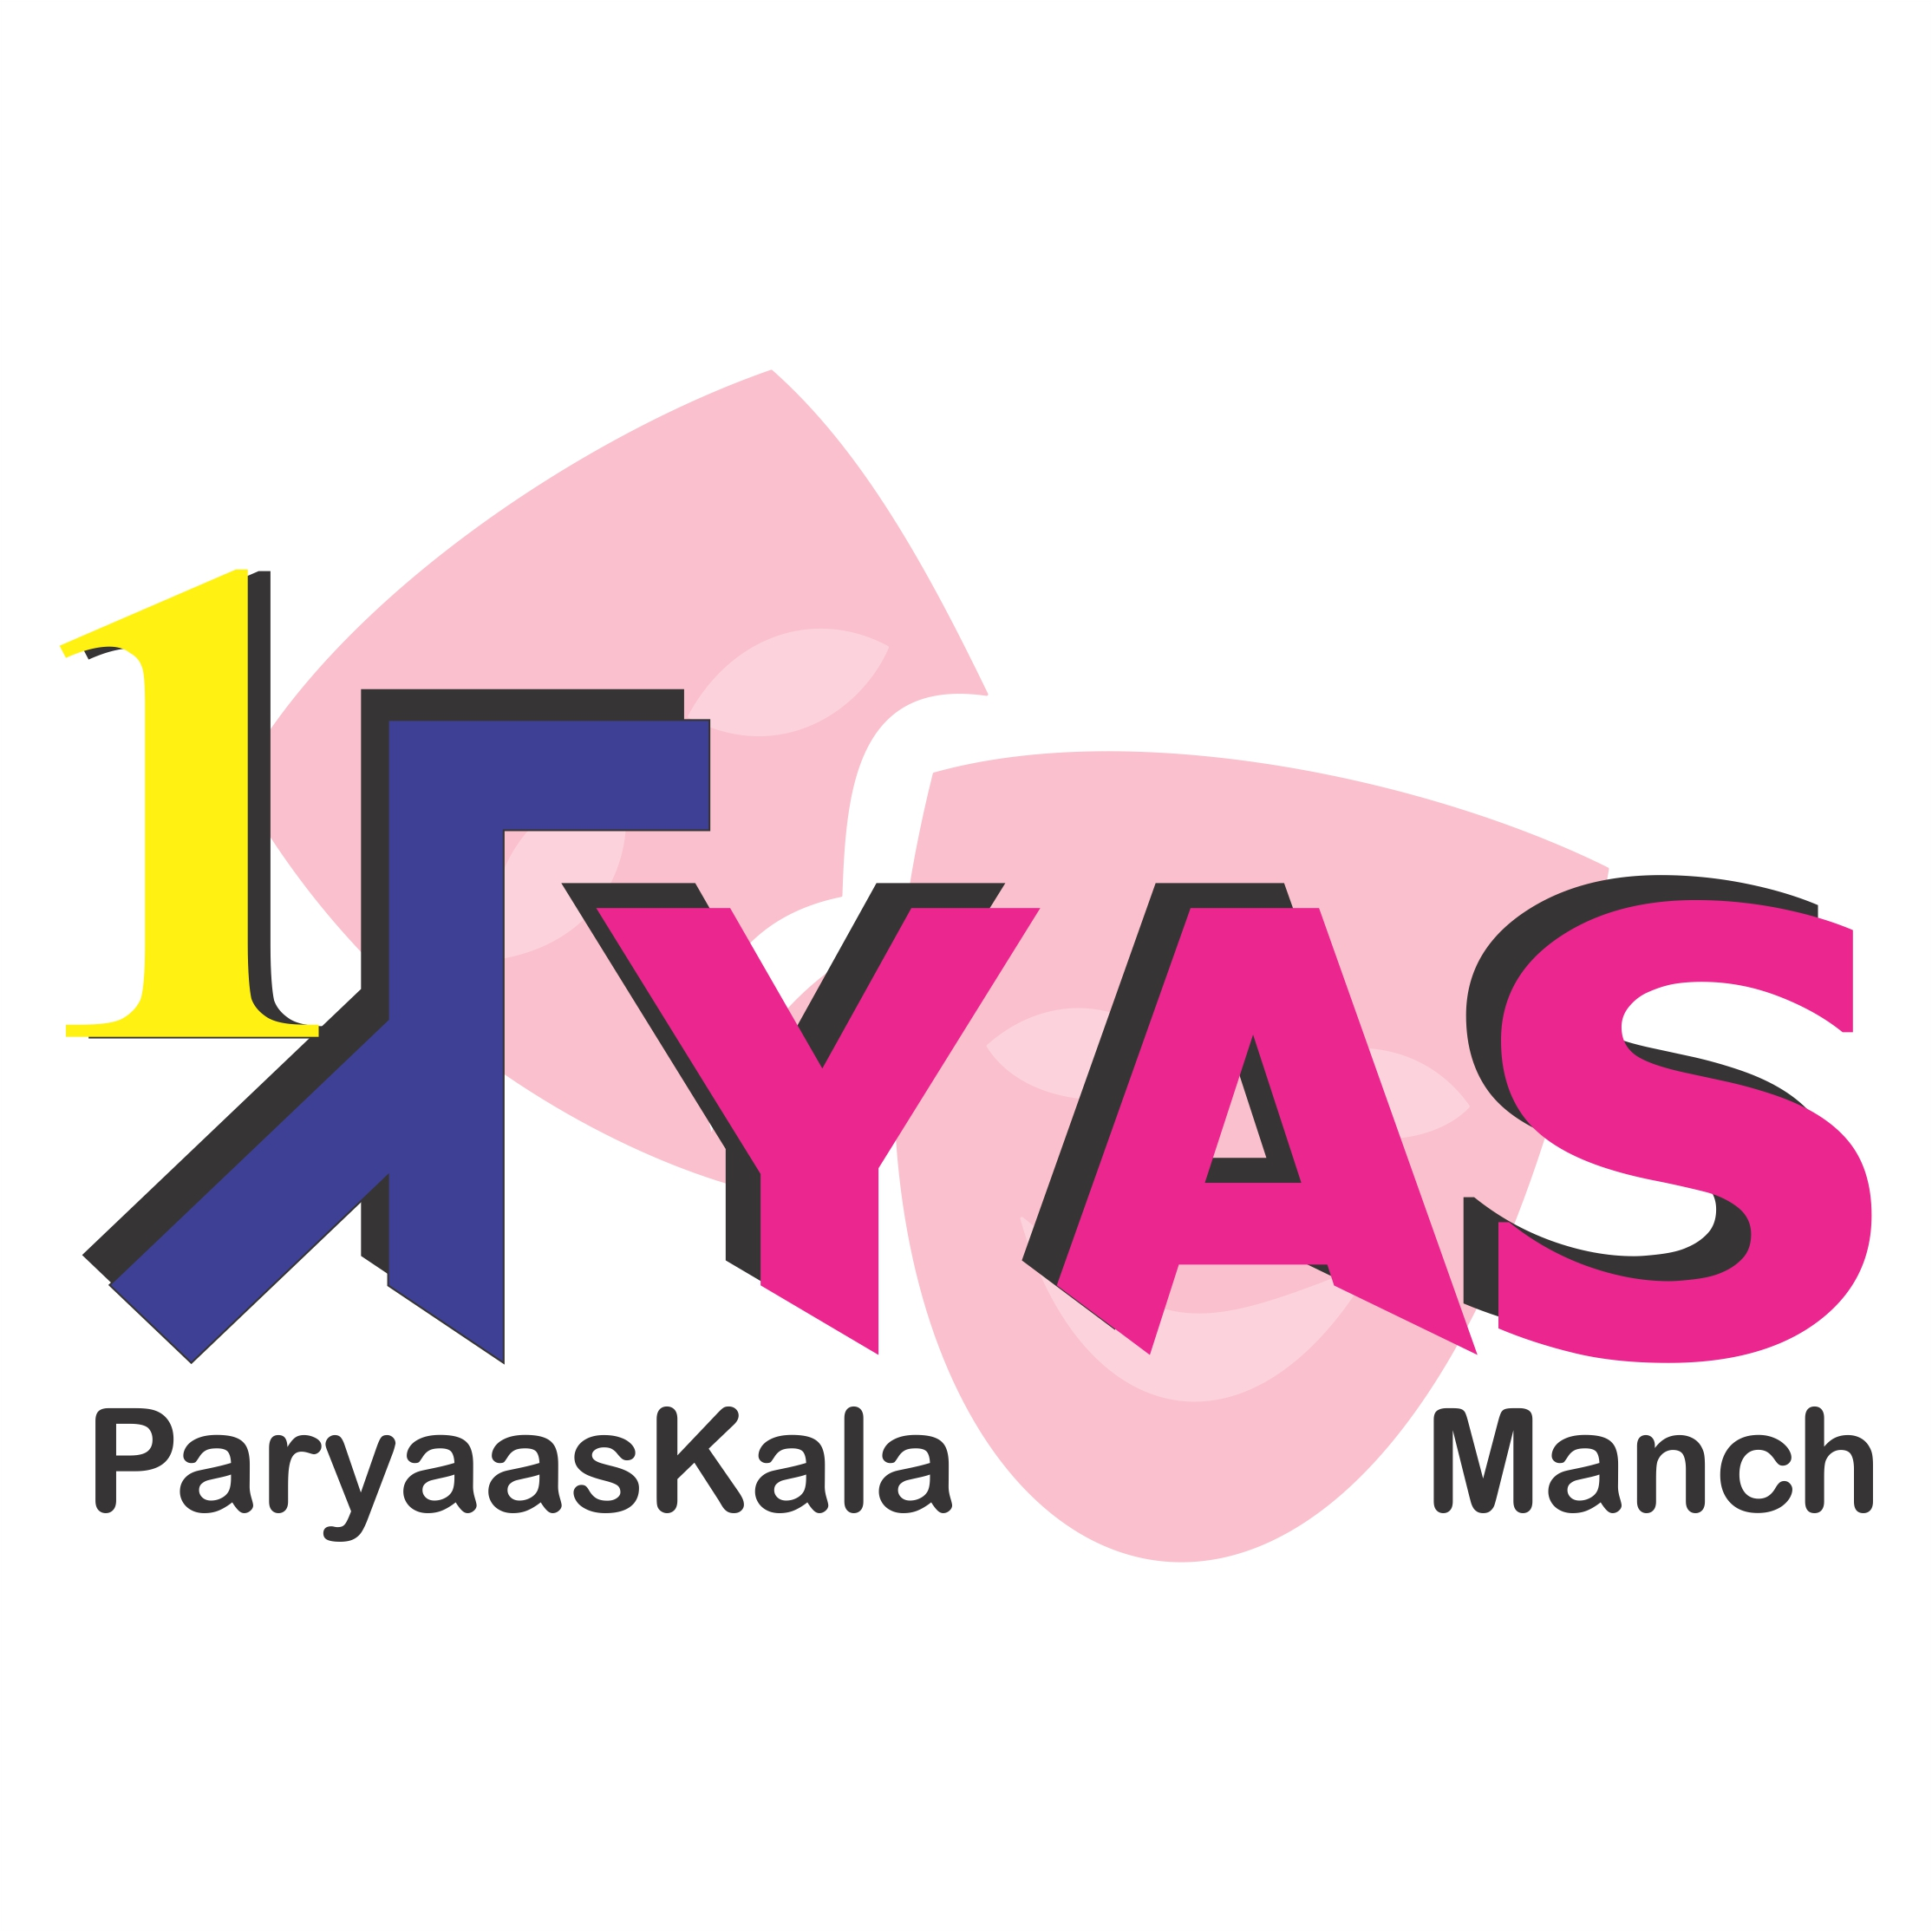 Paryaaskala Manch Theatre Group @ +919958009600 - logo